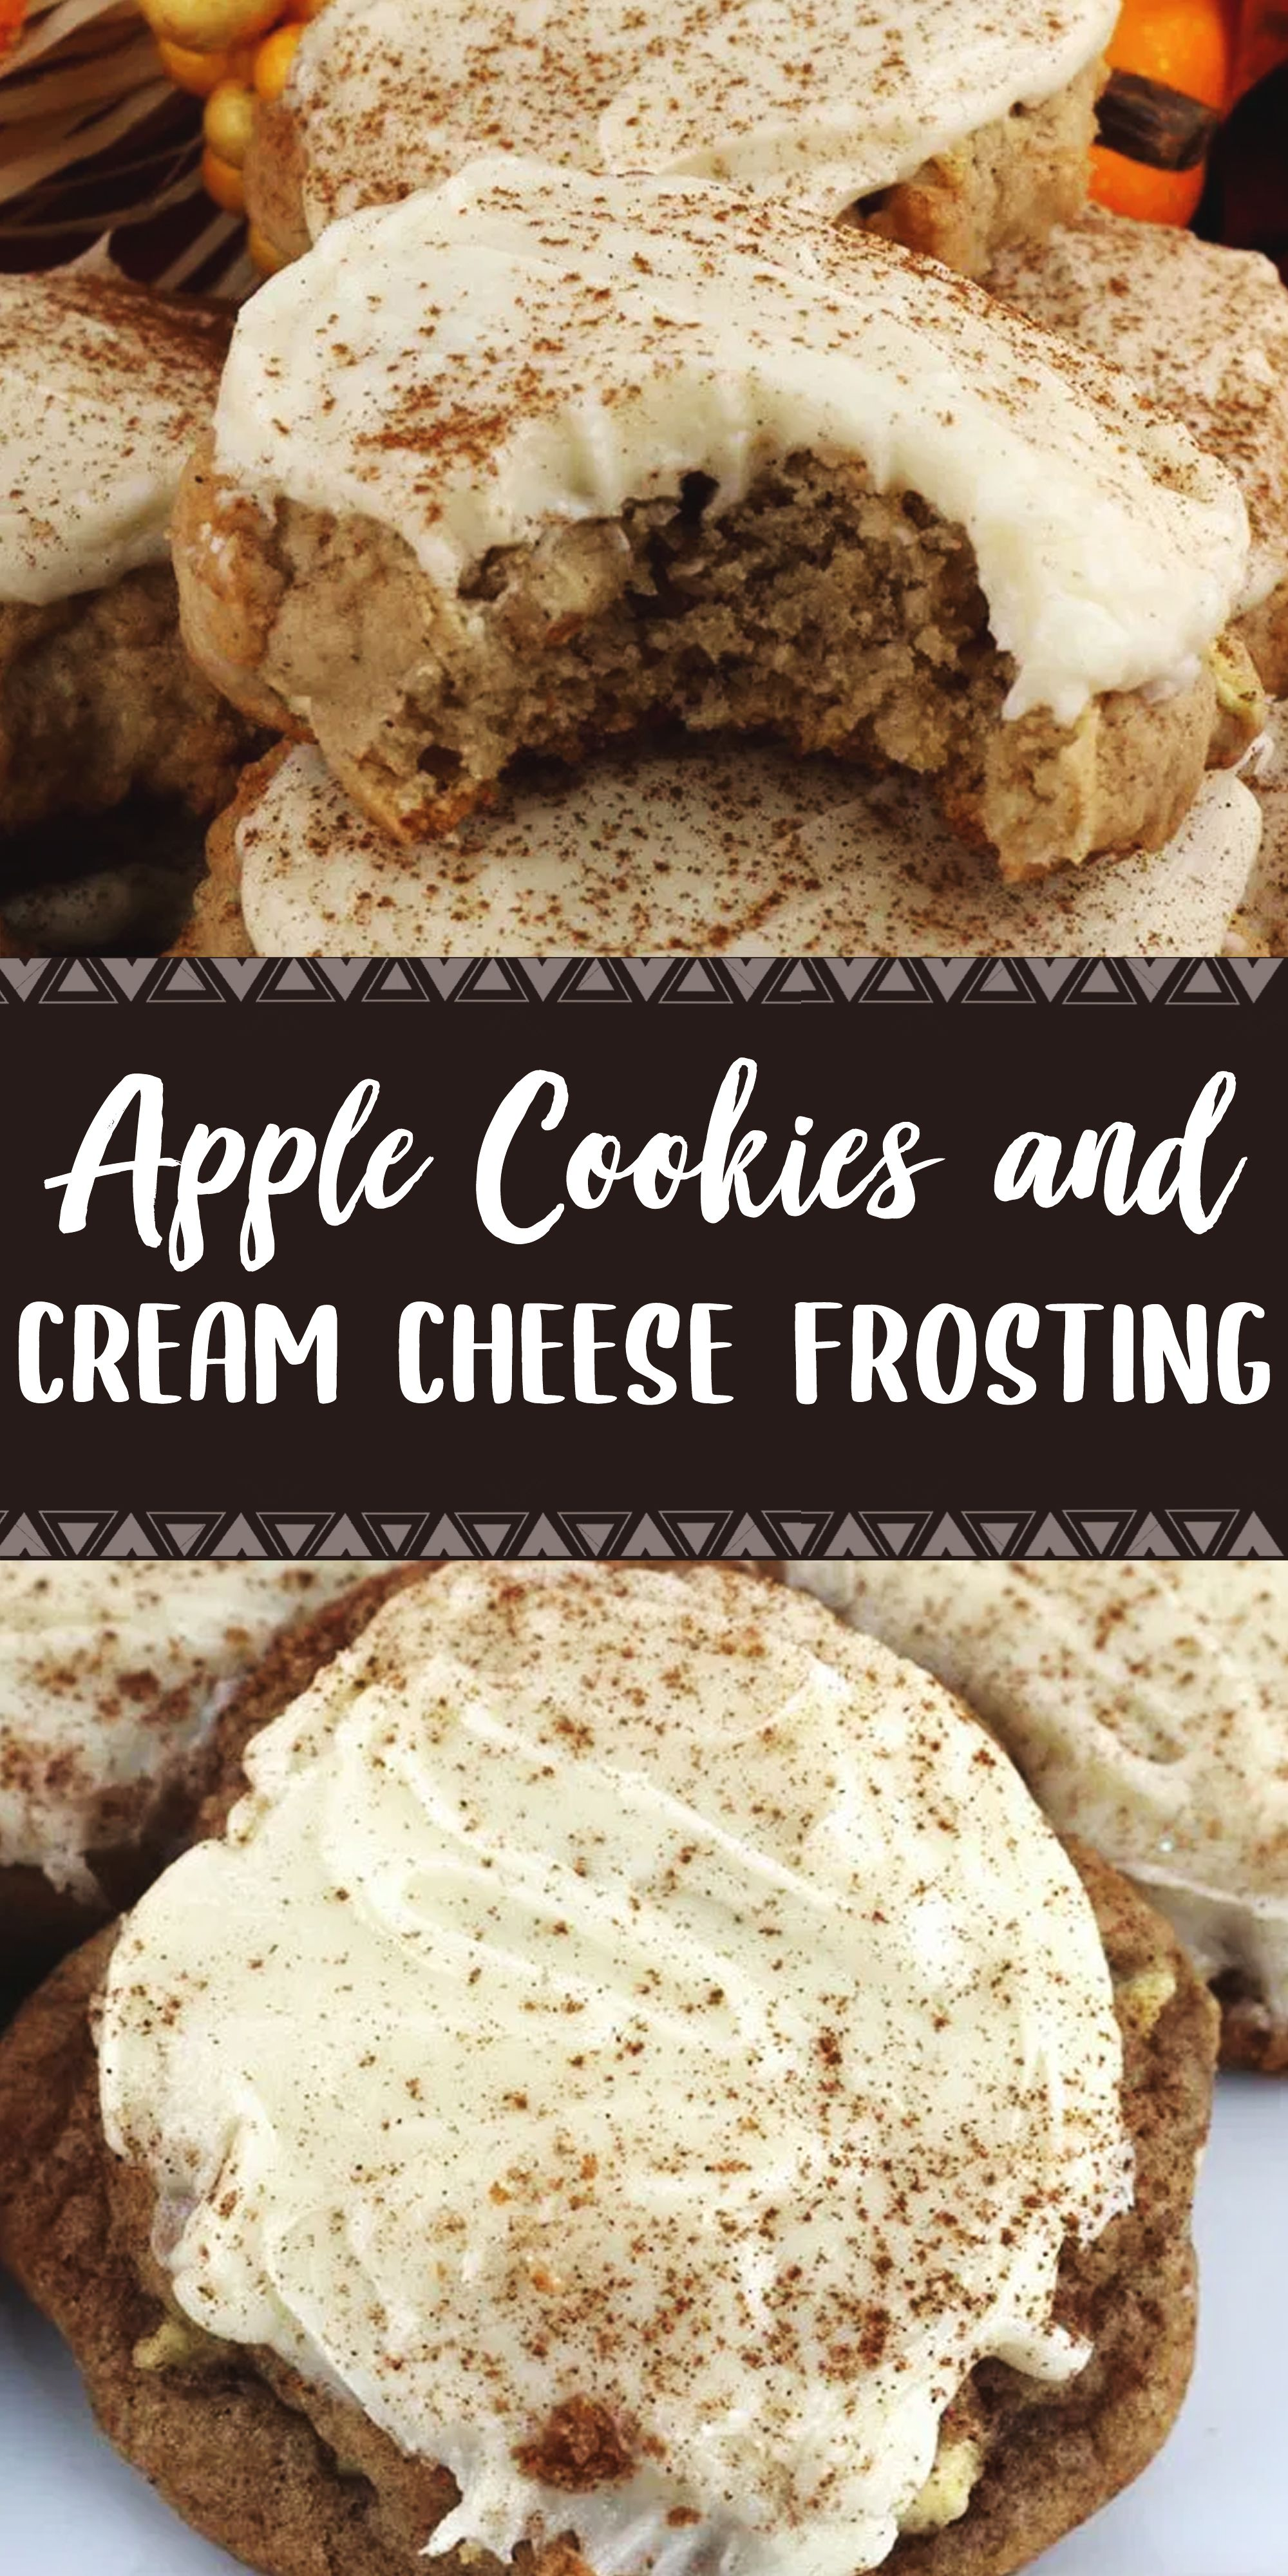 APPLE COOKIES AND CREAM CHEESE FROSTING #oreofrosting